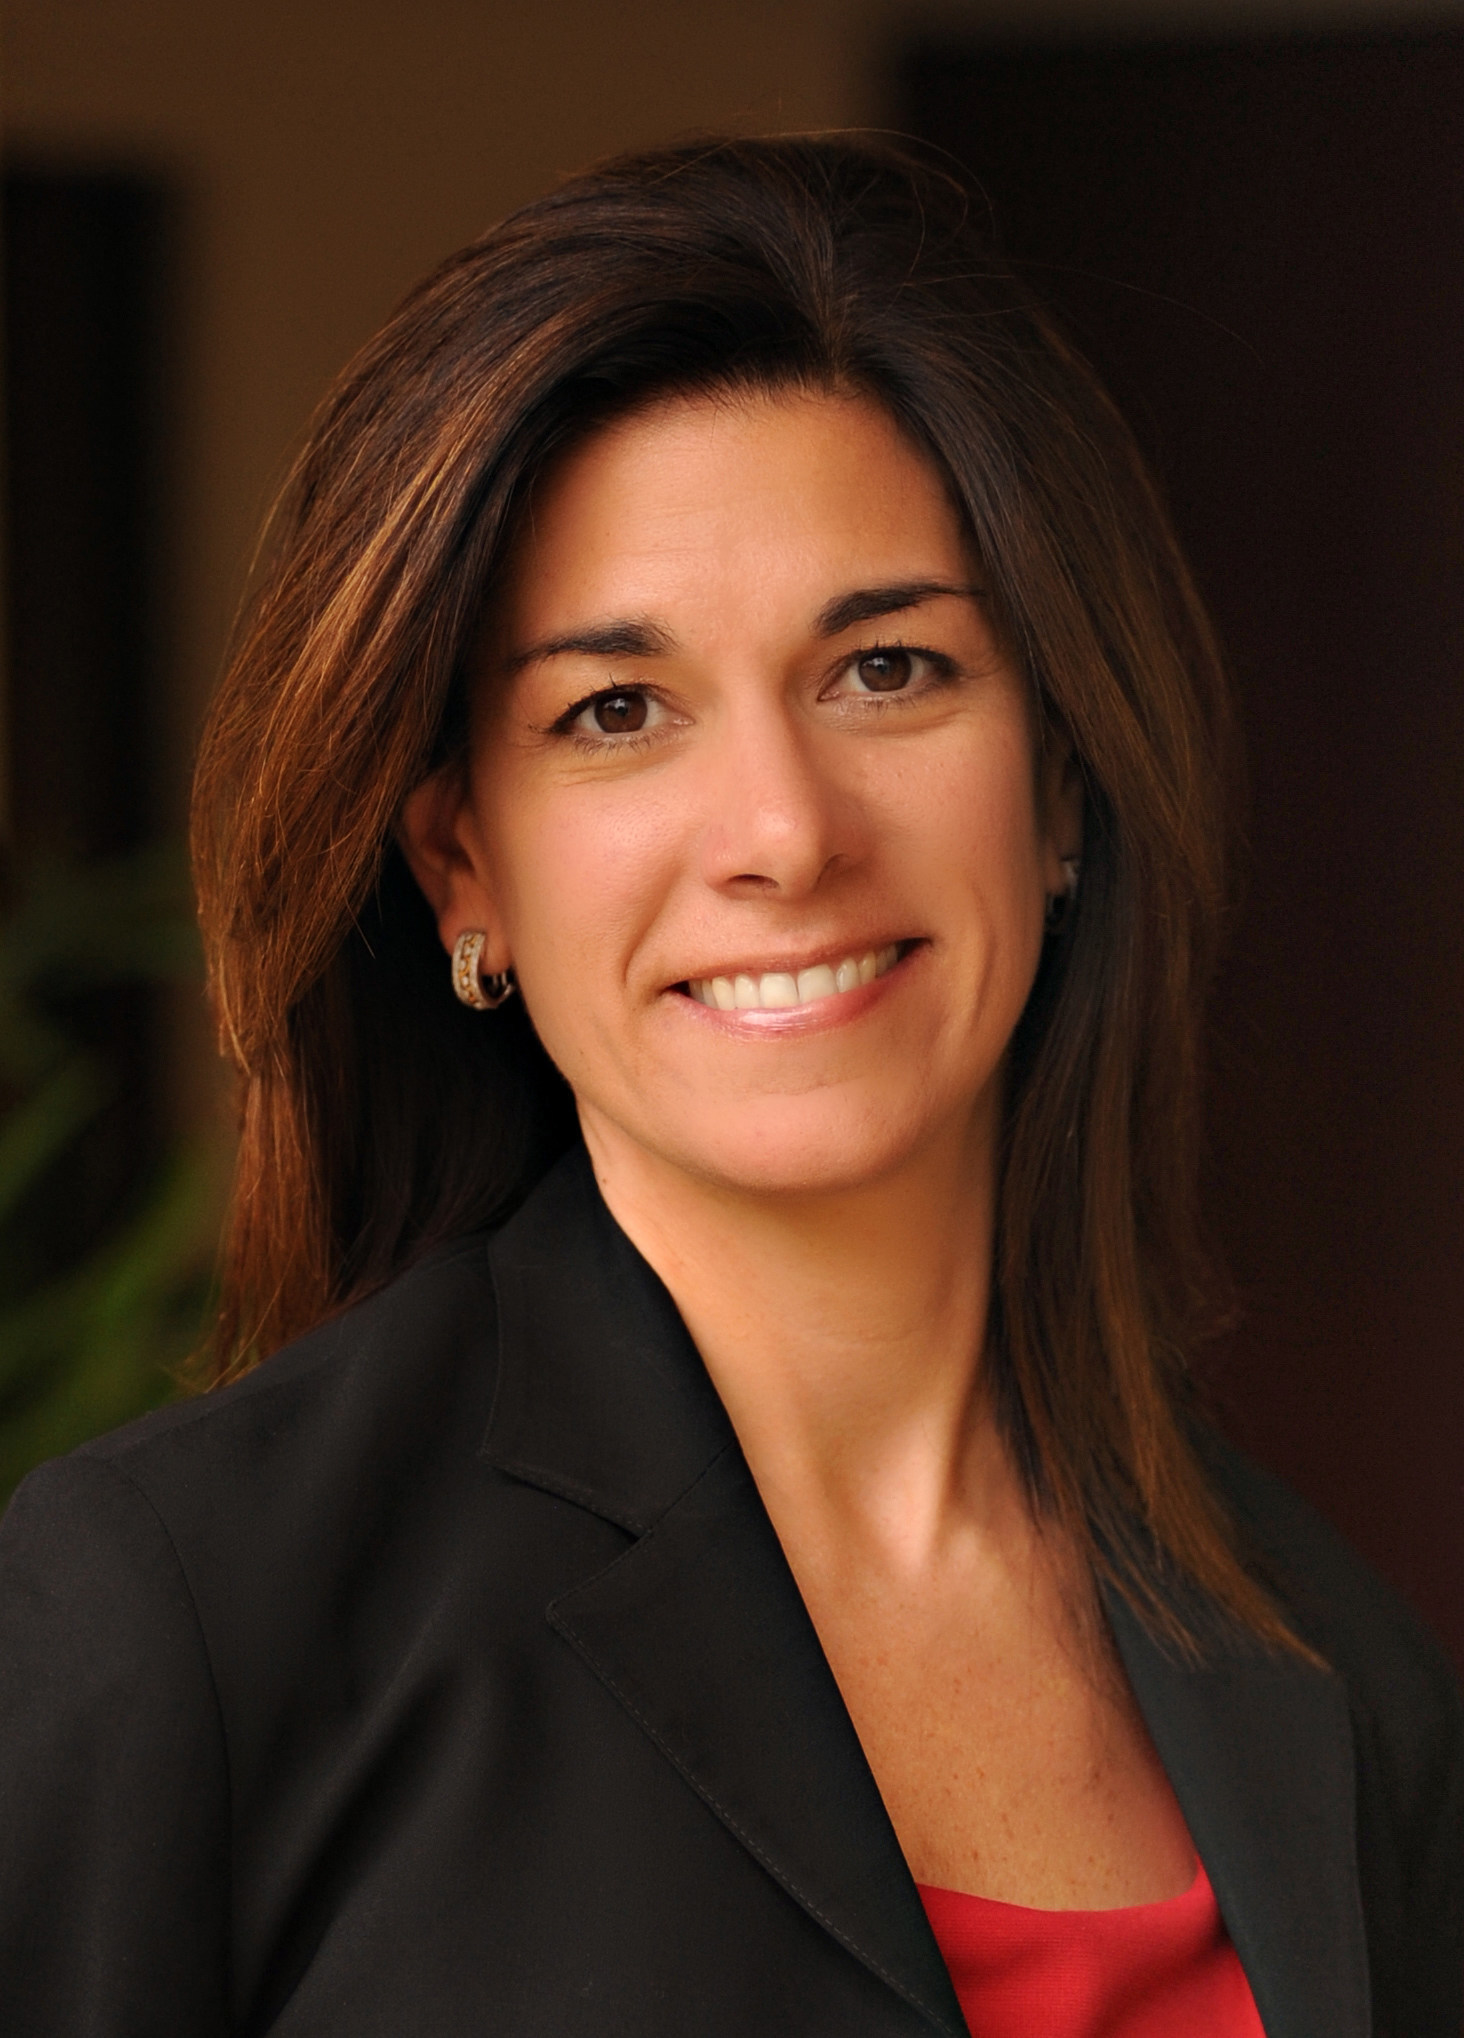 Farmers Insurance Announces Krista Conte As The Head Of Exclusive